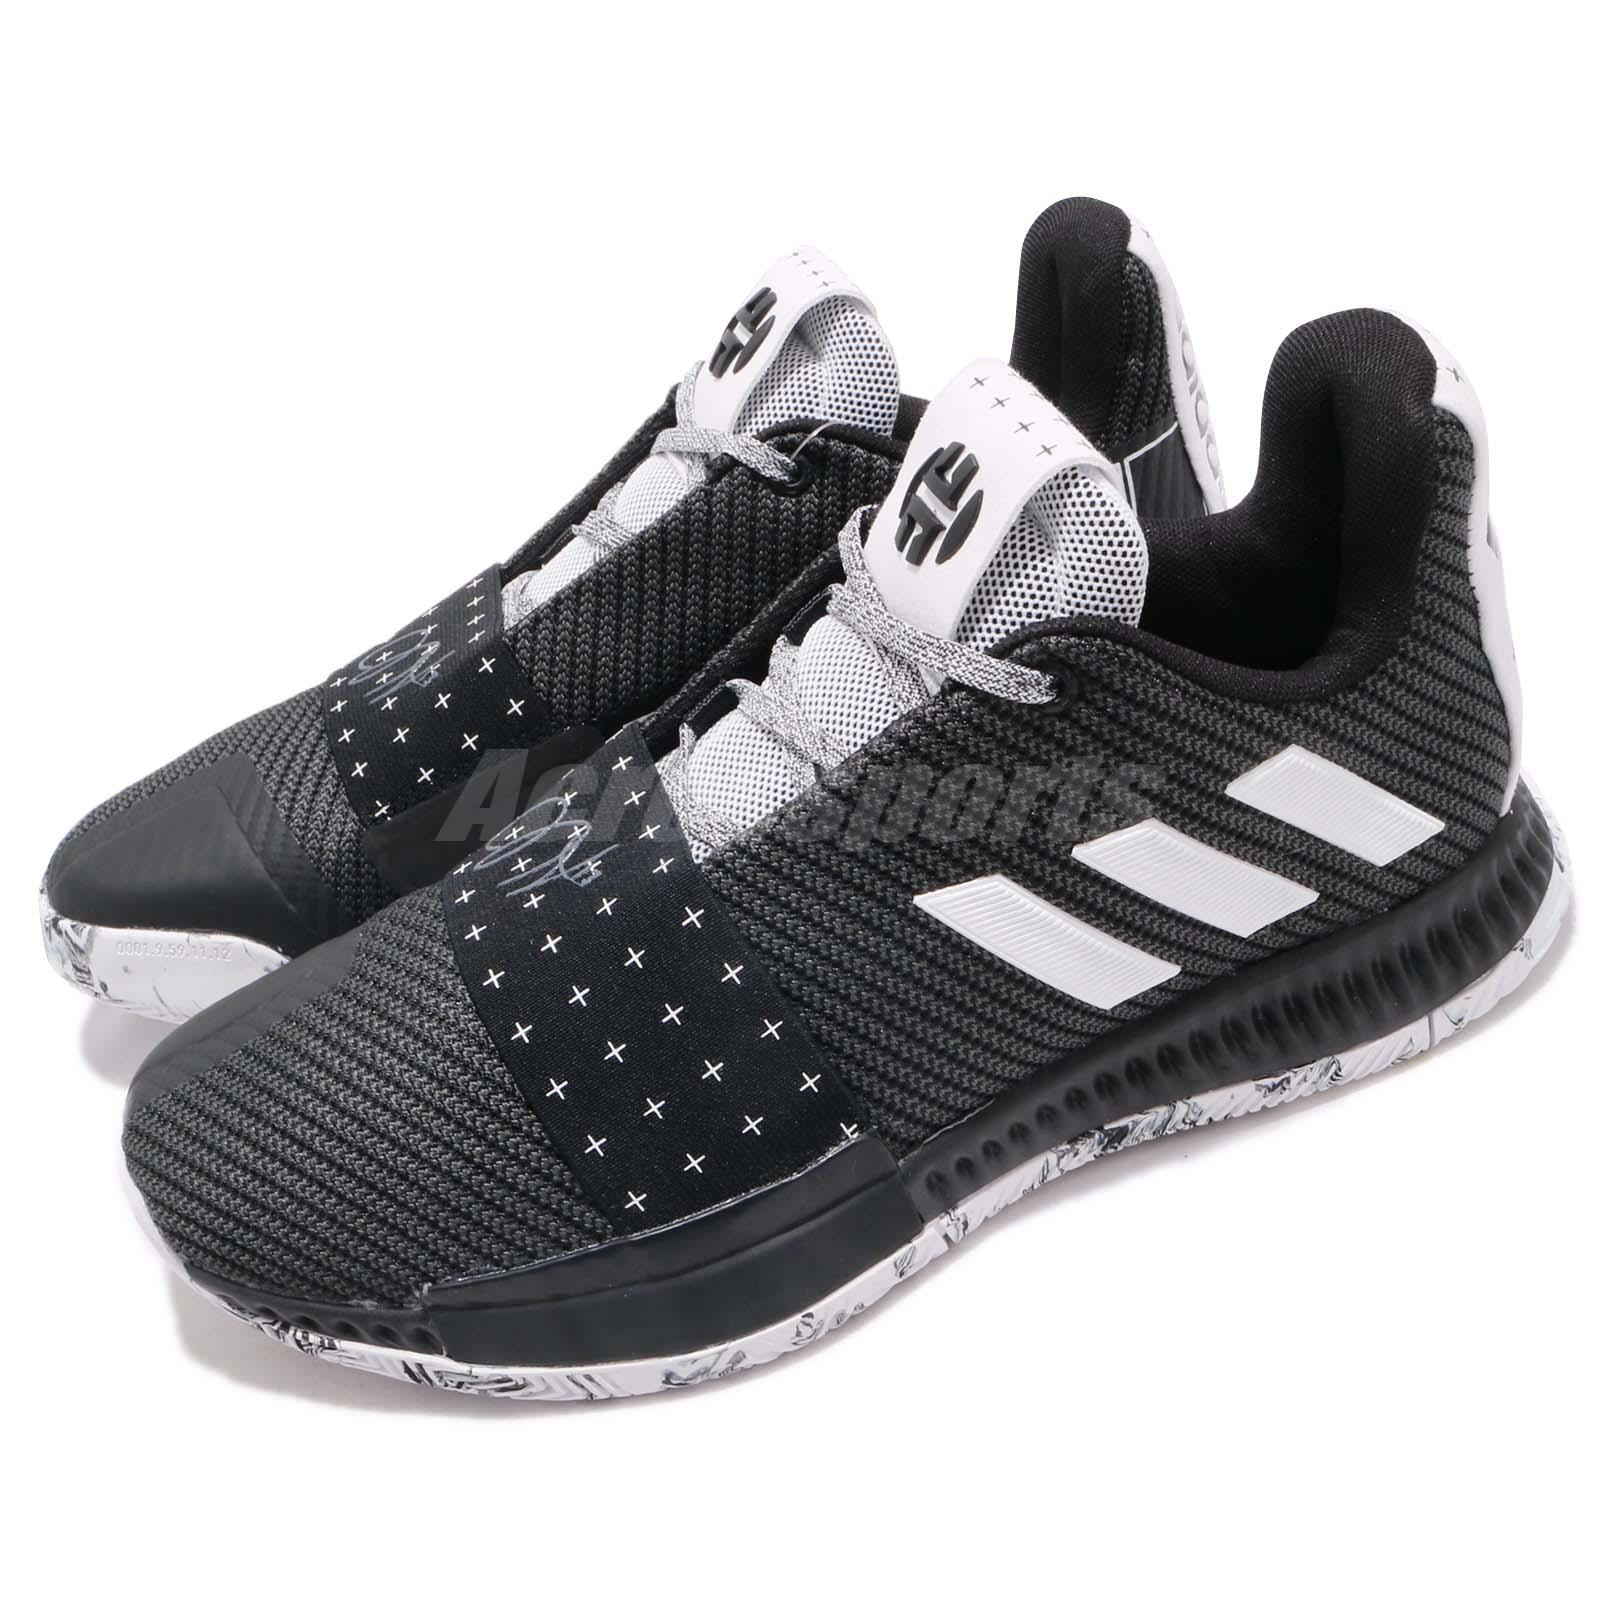 741978e1779f Details about adidas Harden Vol. 3 J James Black White Youth Womens Basketball  Shoes AC7616